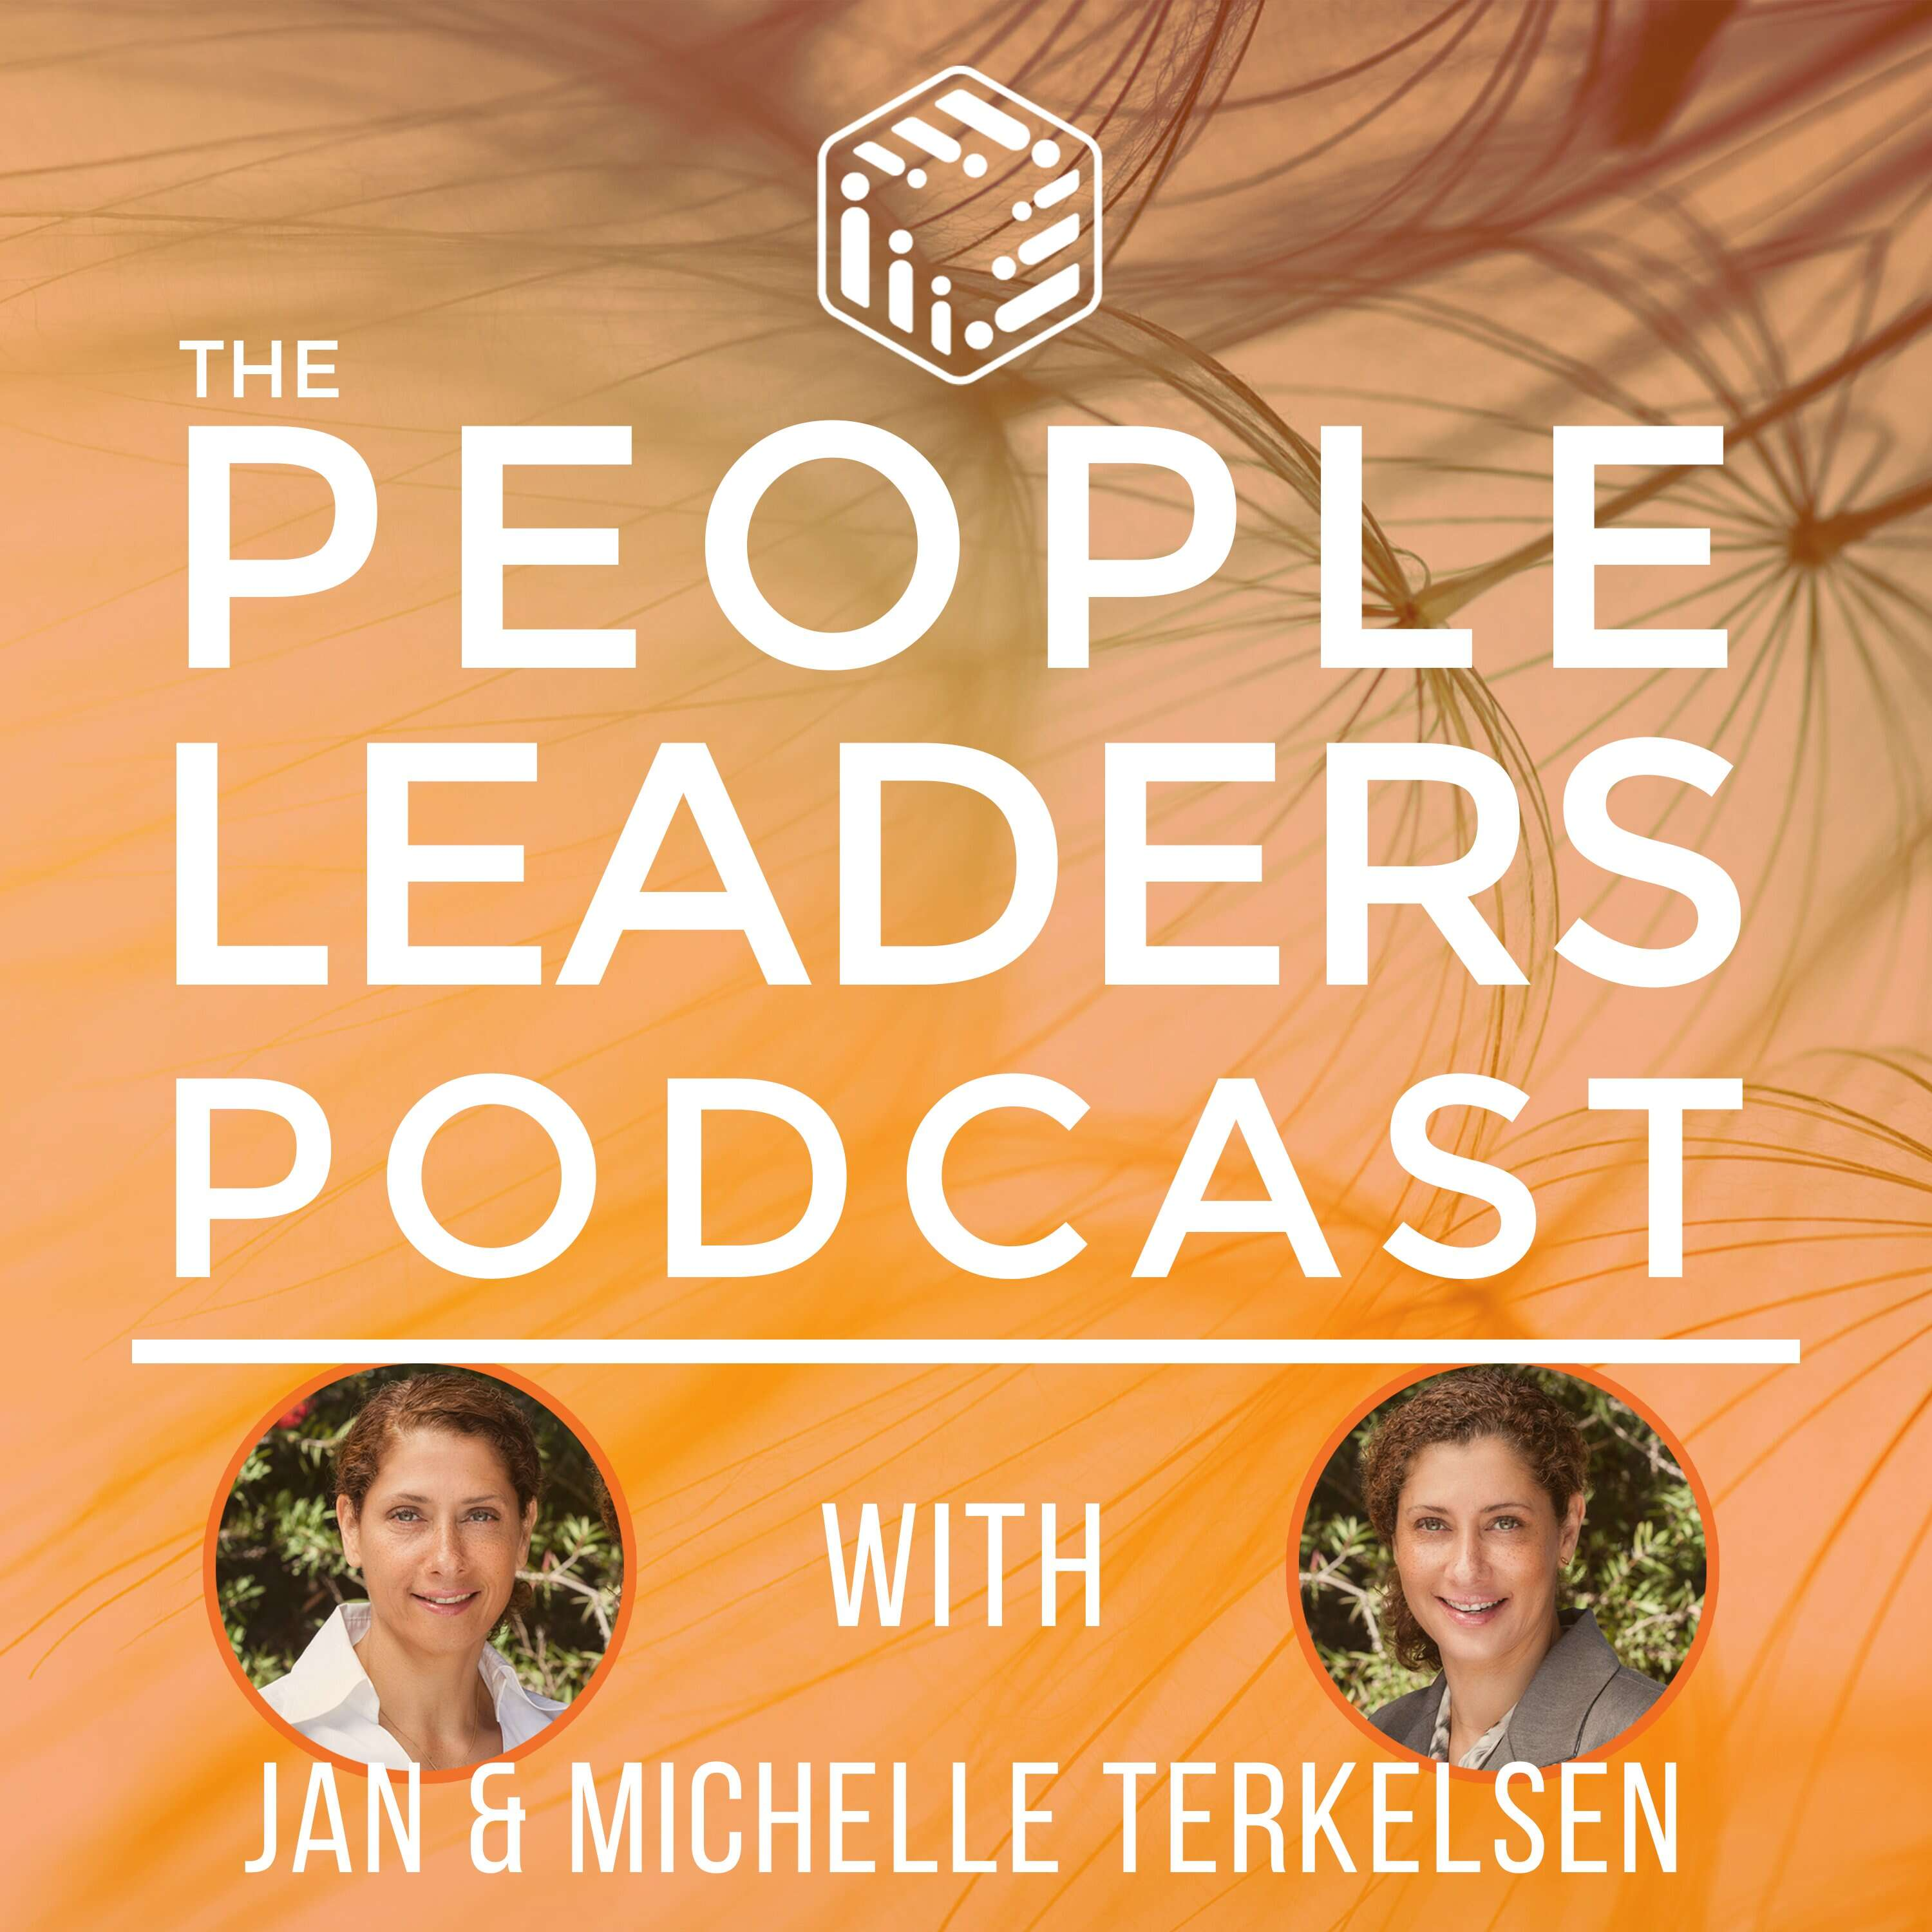 The People Leaders Podcast